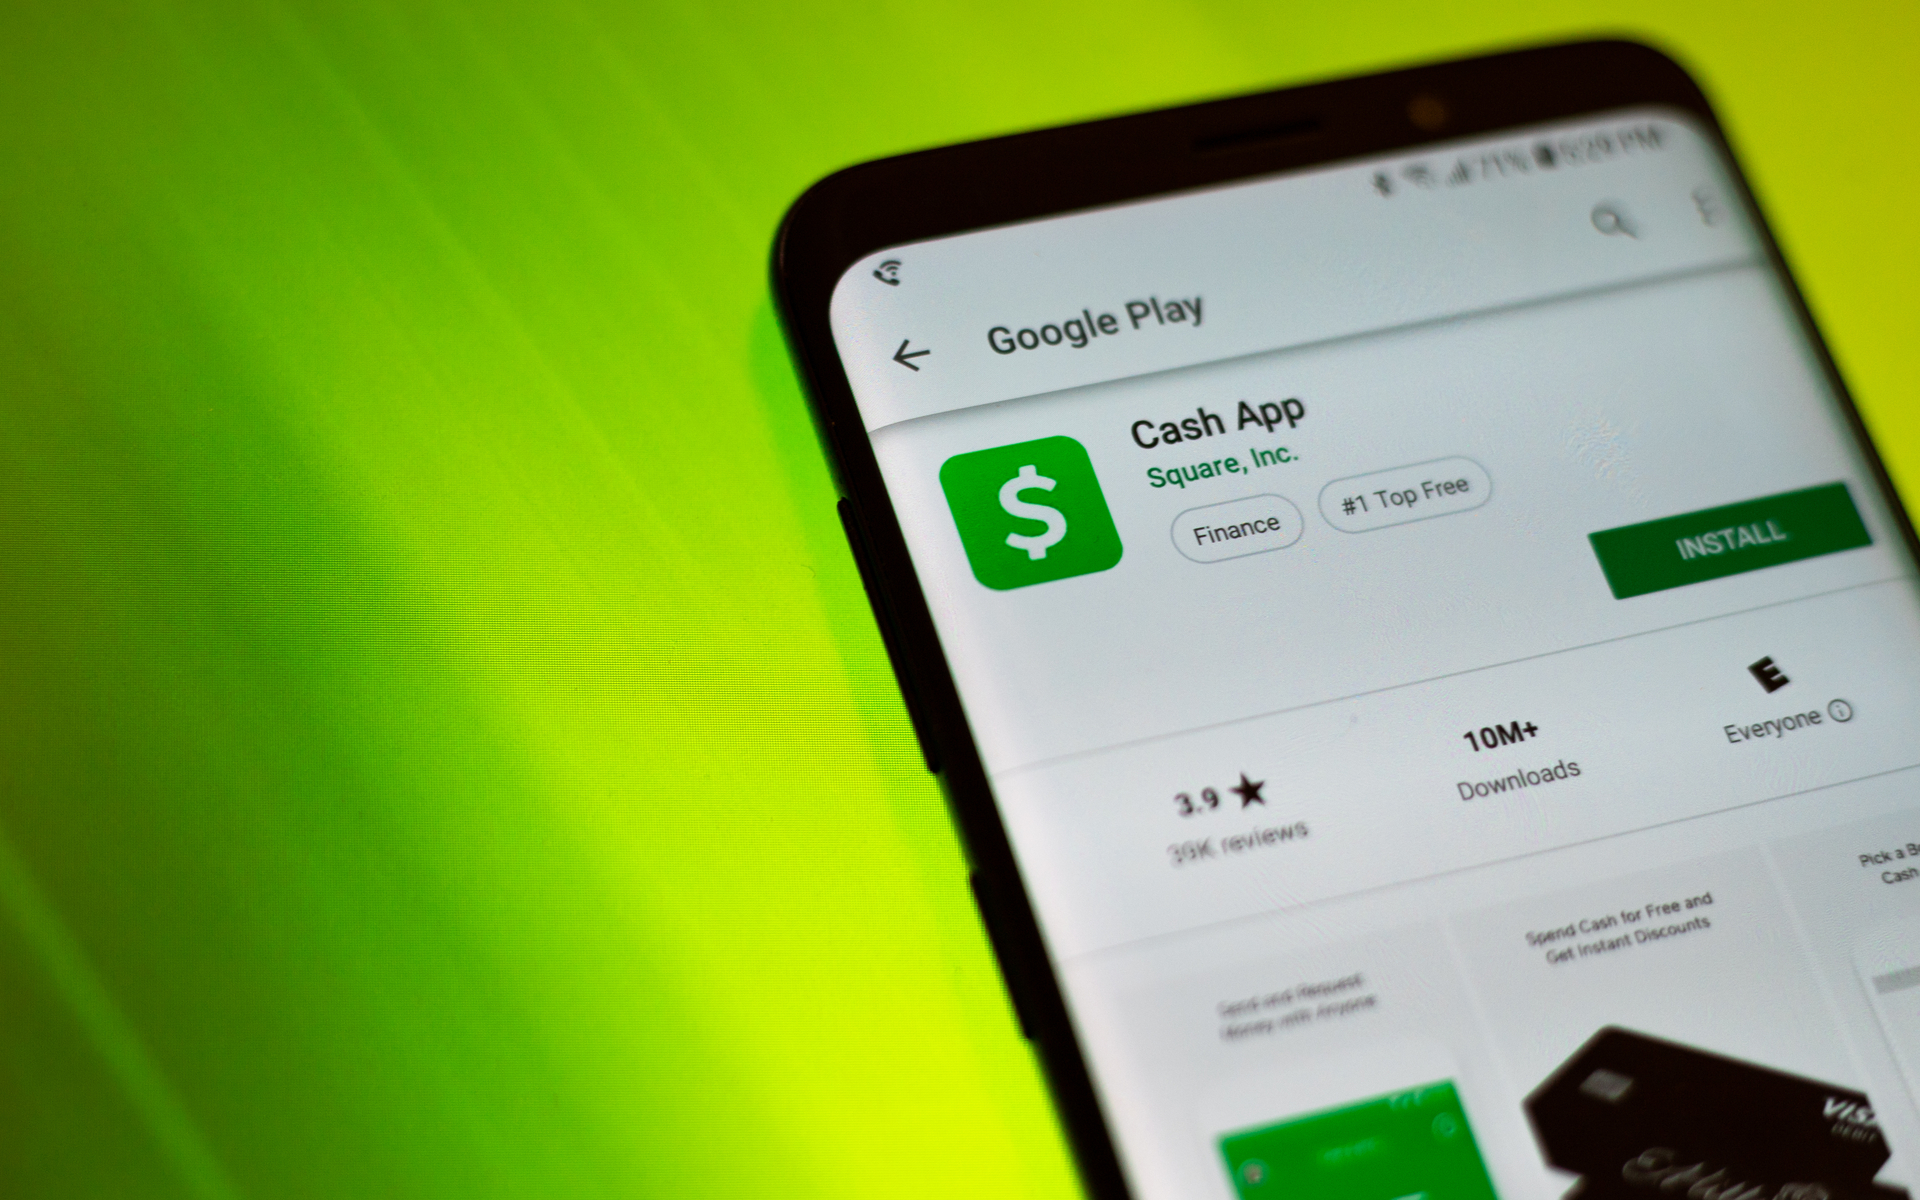 square cash app bitcoin